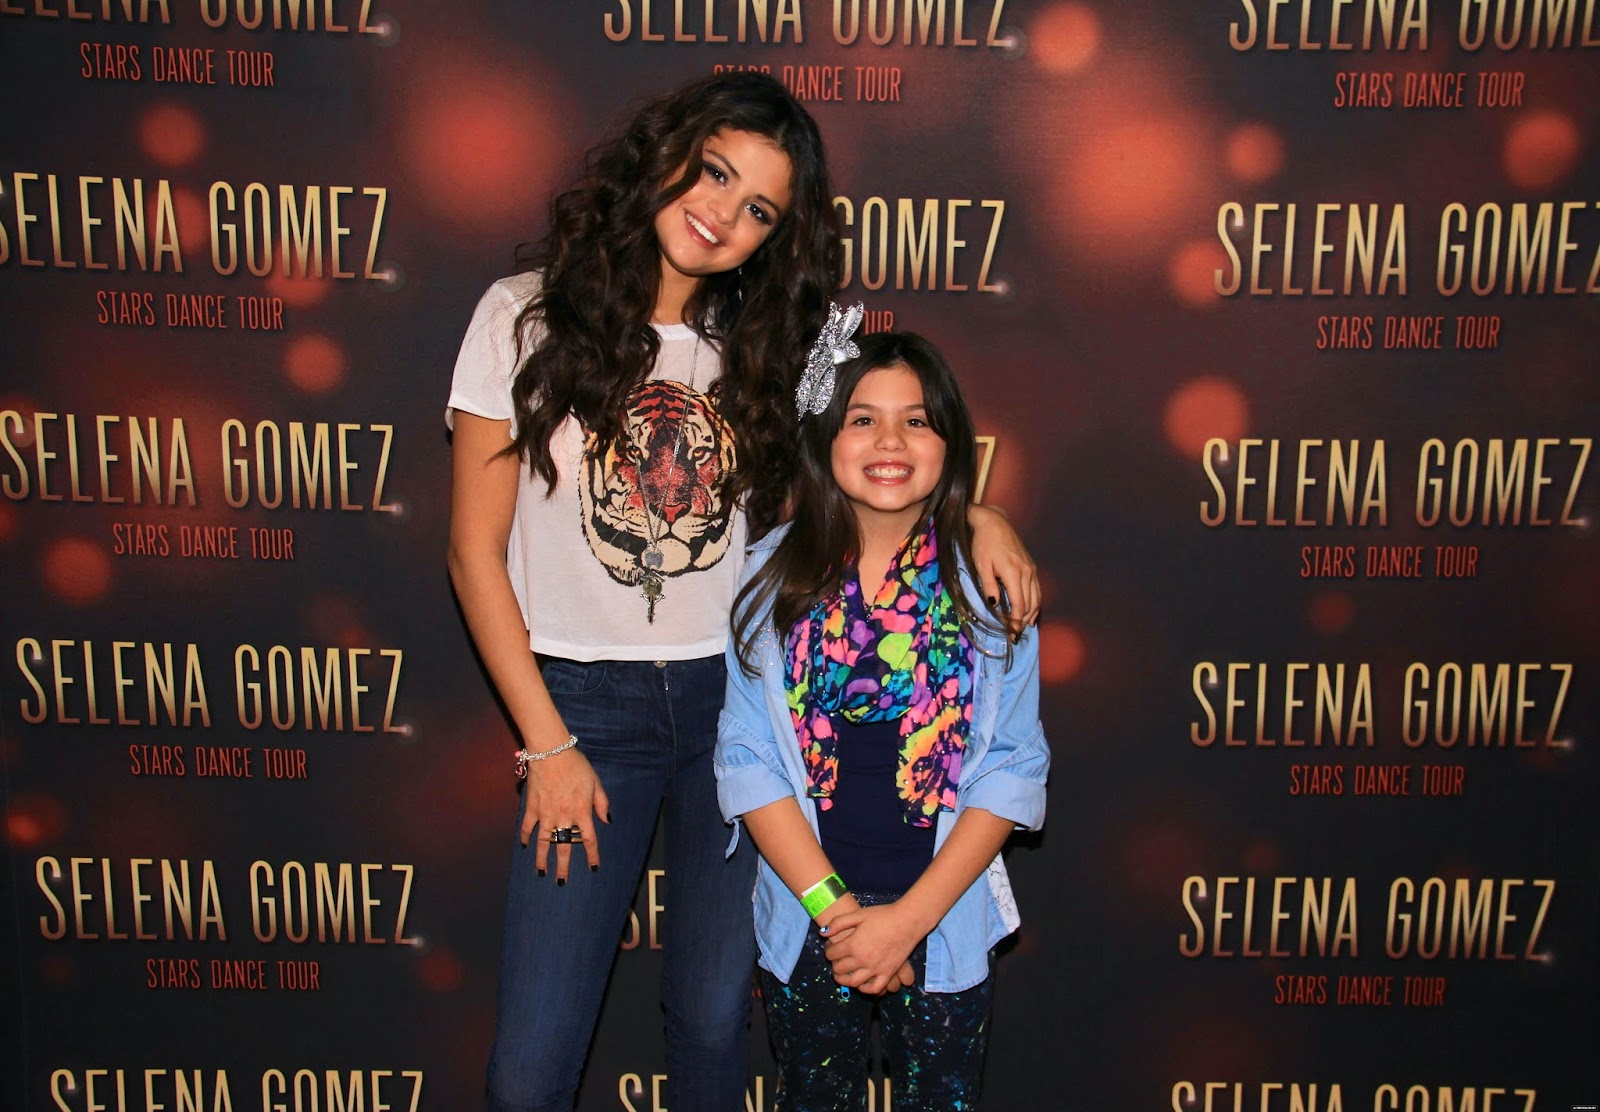 selena gomez stars dance tour meet and greet tumblr search